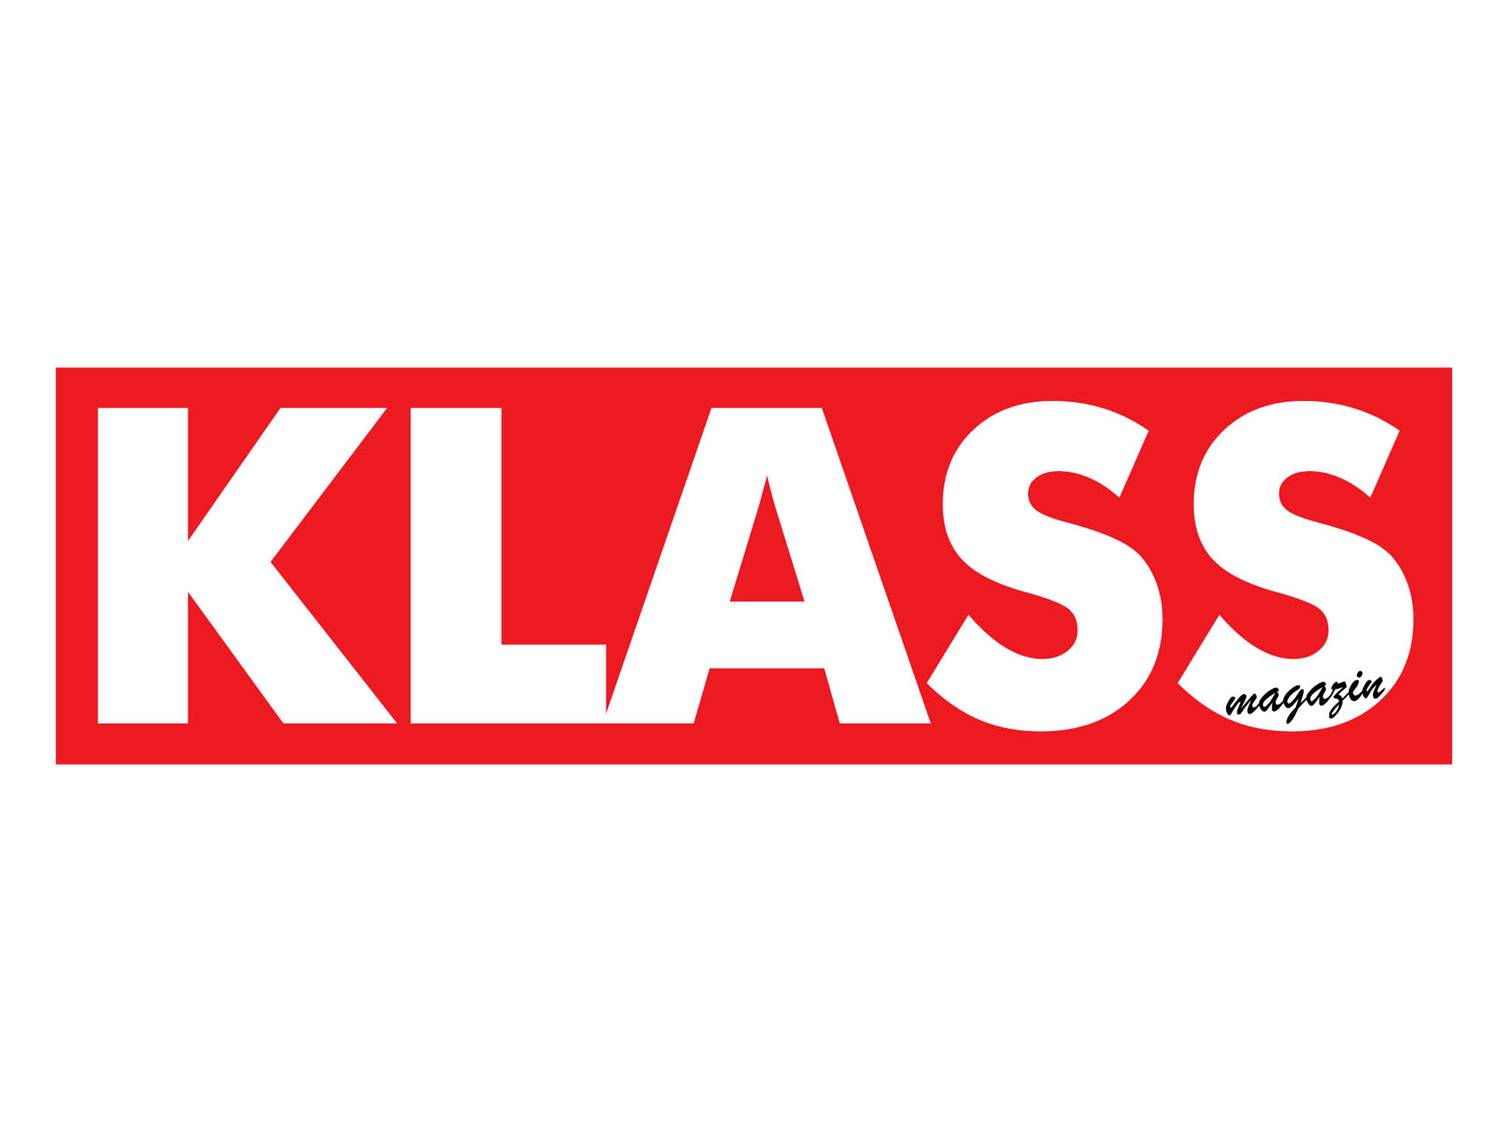 Klass Magazin